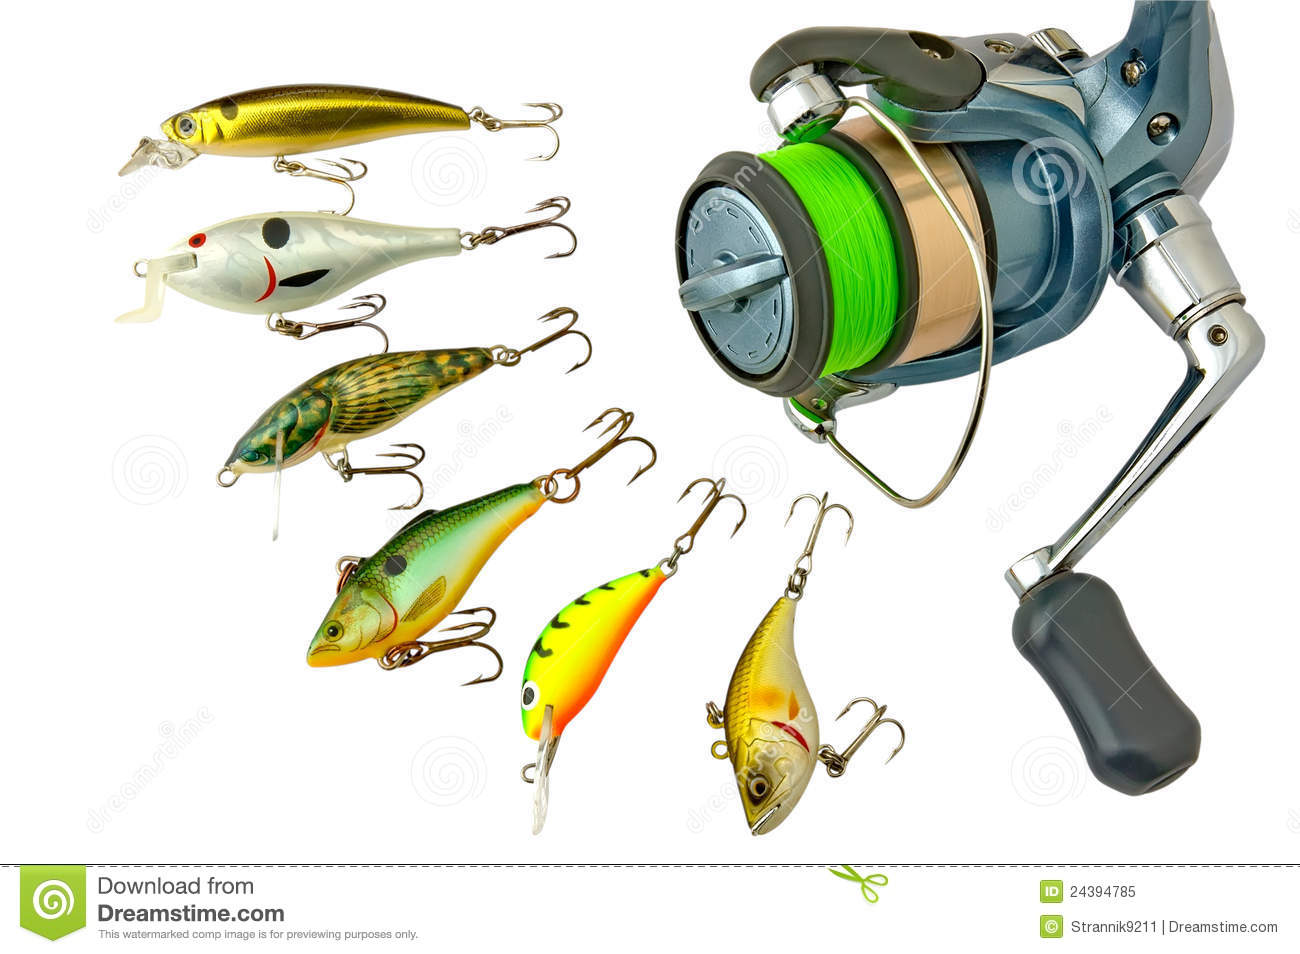 fishing tackle royalty free stock photo - image: 24394785, Fishing Reels